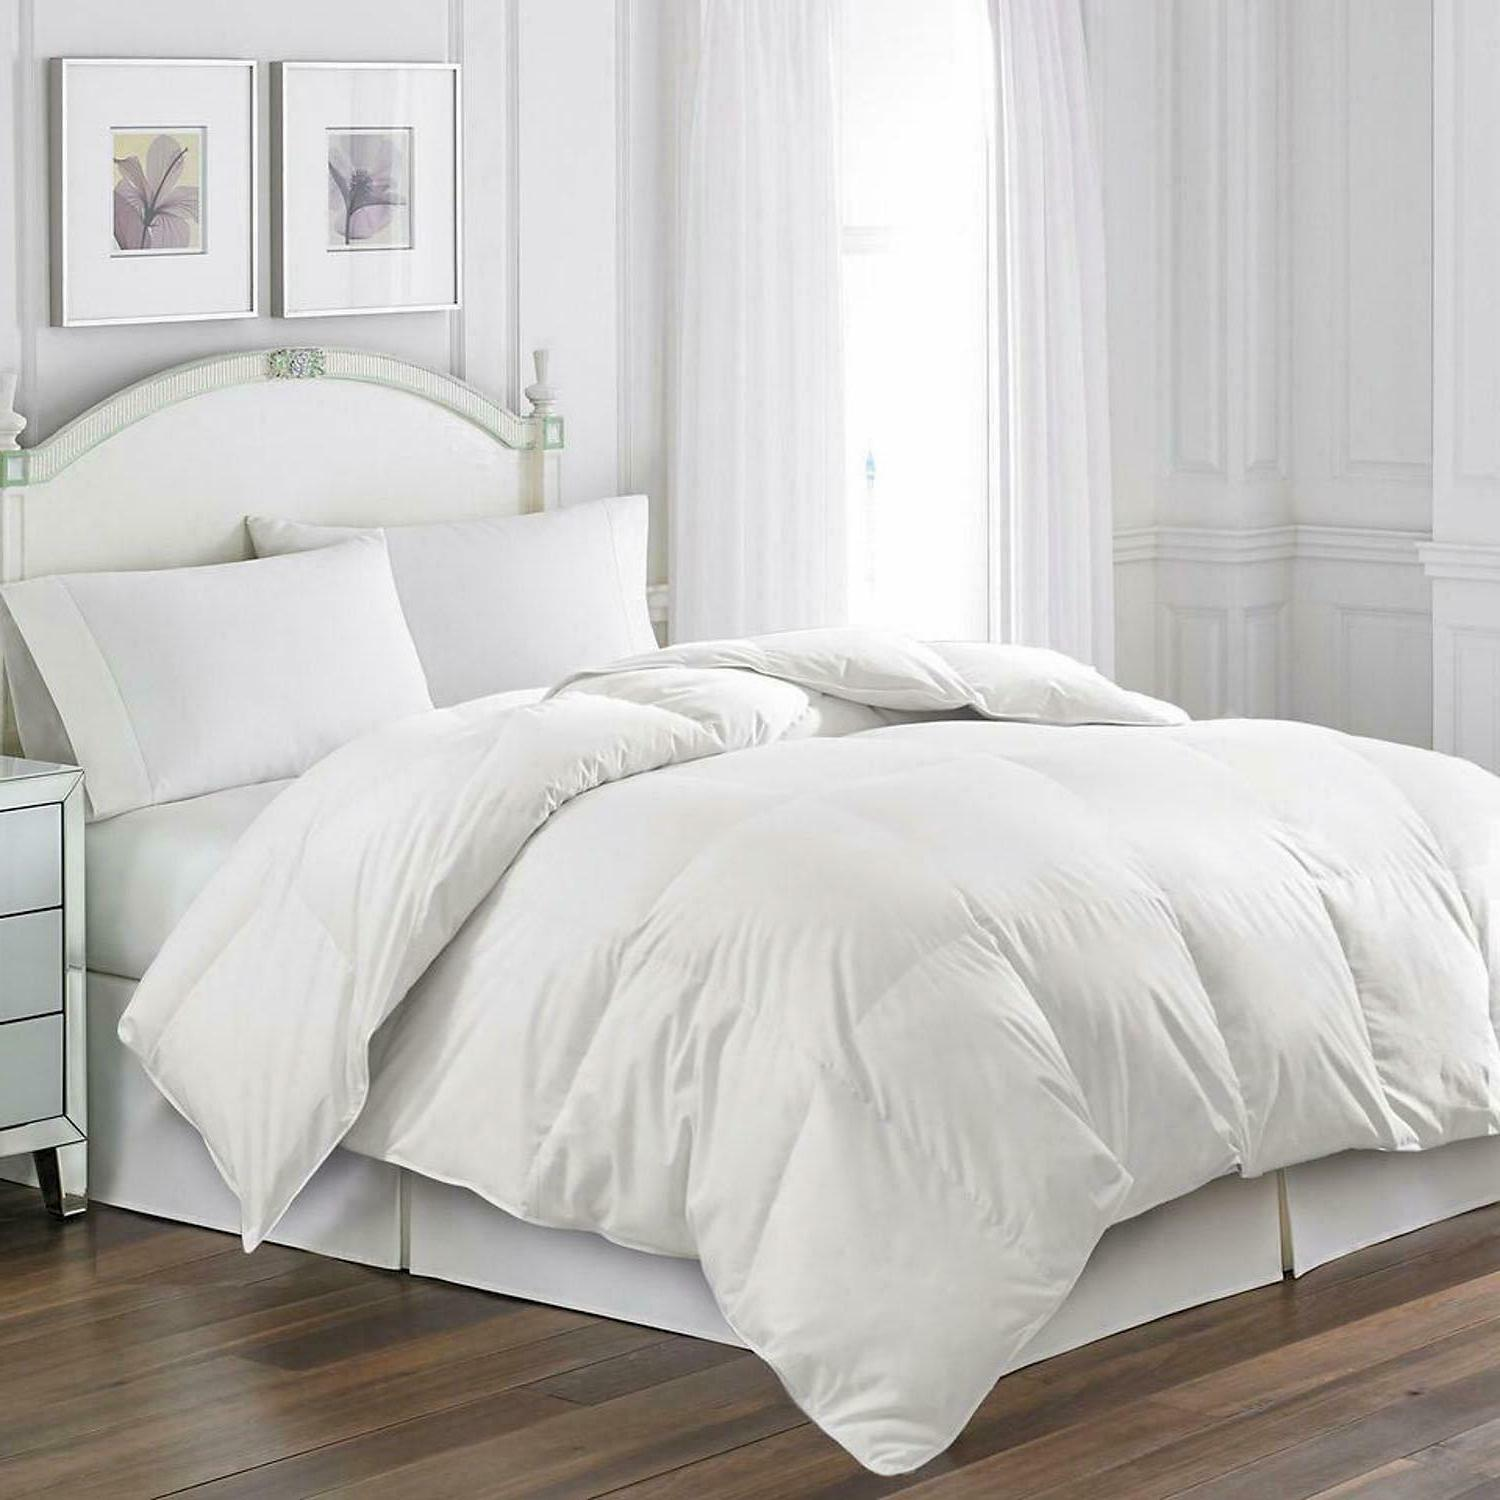 blue ridge goose feather comforter and quilted